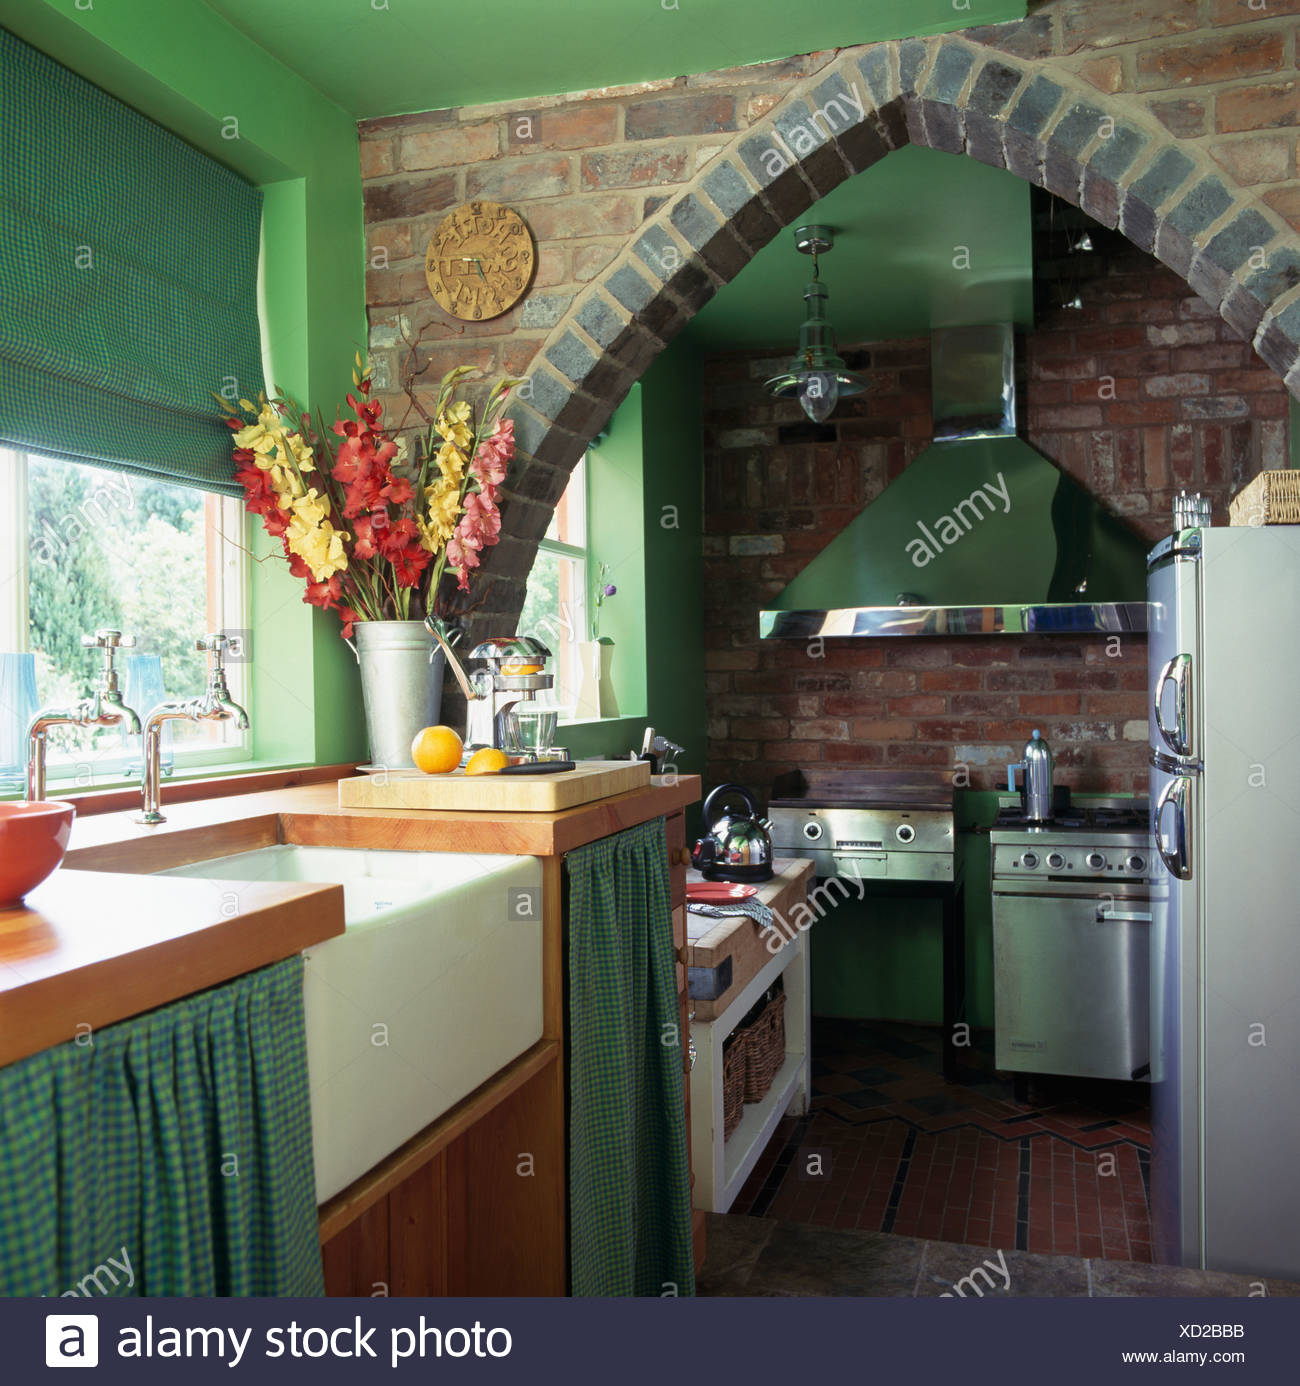 Brick Arch In Small Green Kitchen With Green Blind On